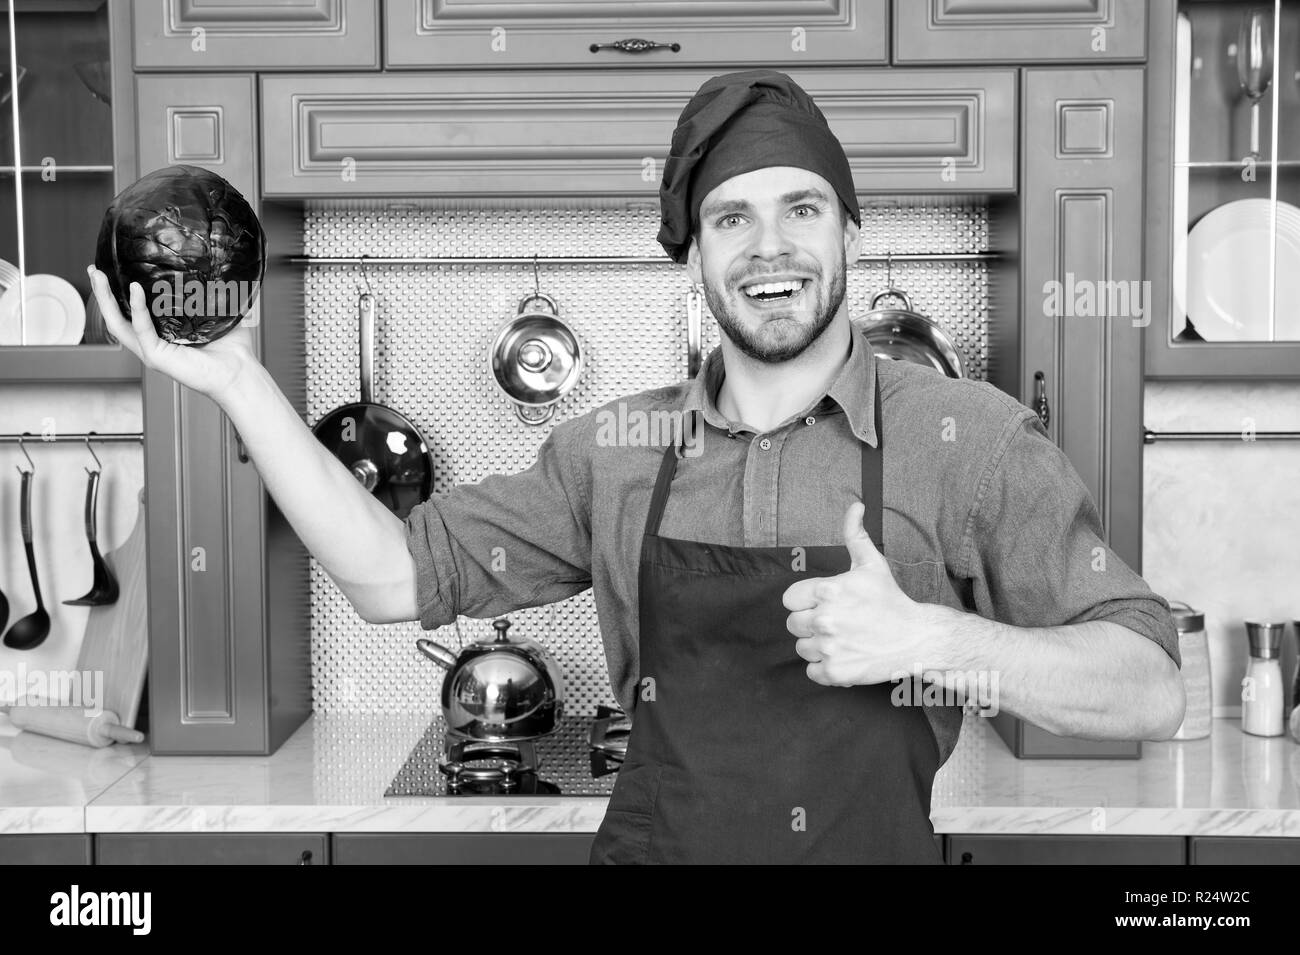 Cook in good mood. Relax put on some music. Composed cook is more efficient one. Man chef likes to cook in relaxing atmosphere. Guy professional chef feels relaxed and cheerful white cooking. Stock Photo